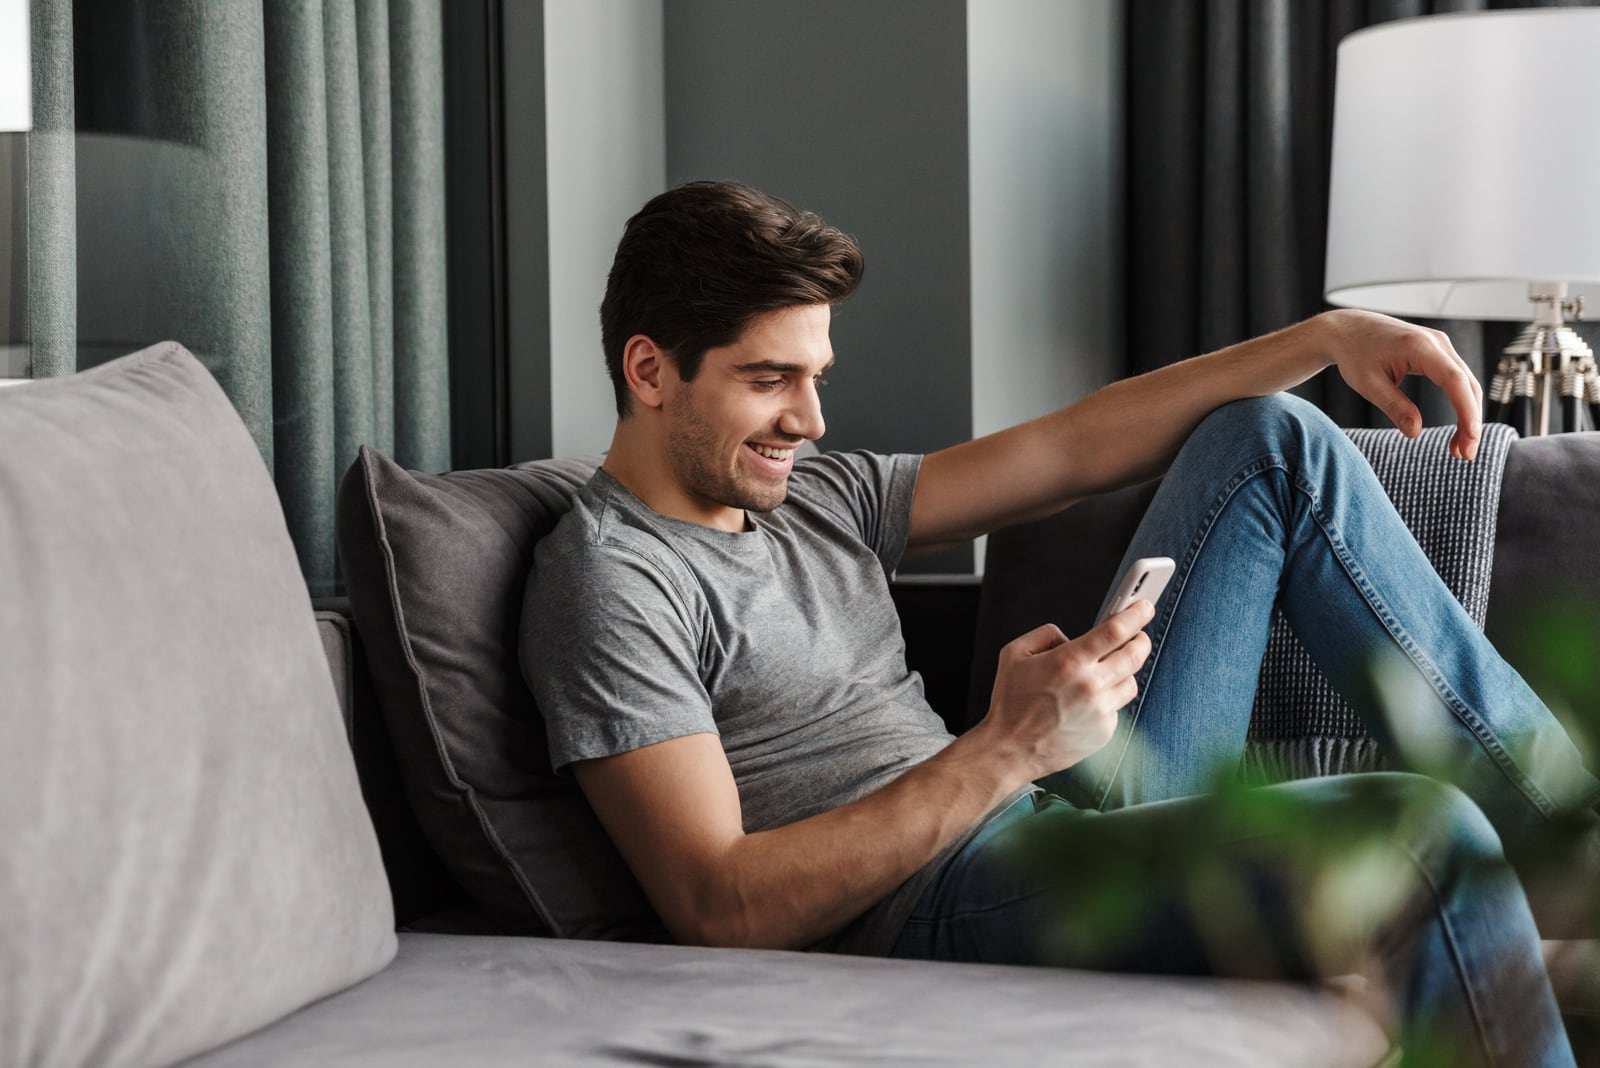 an attractive smiling man sits on a sofa and uses a smartphone